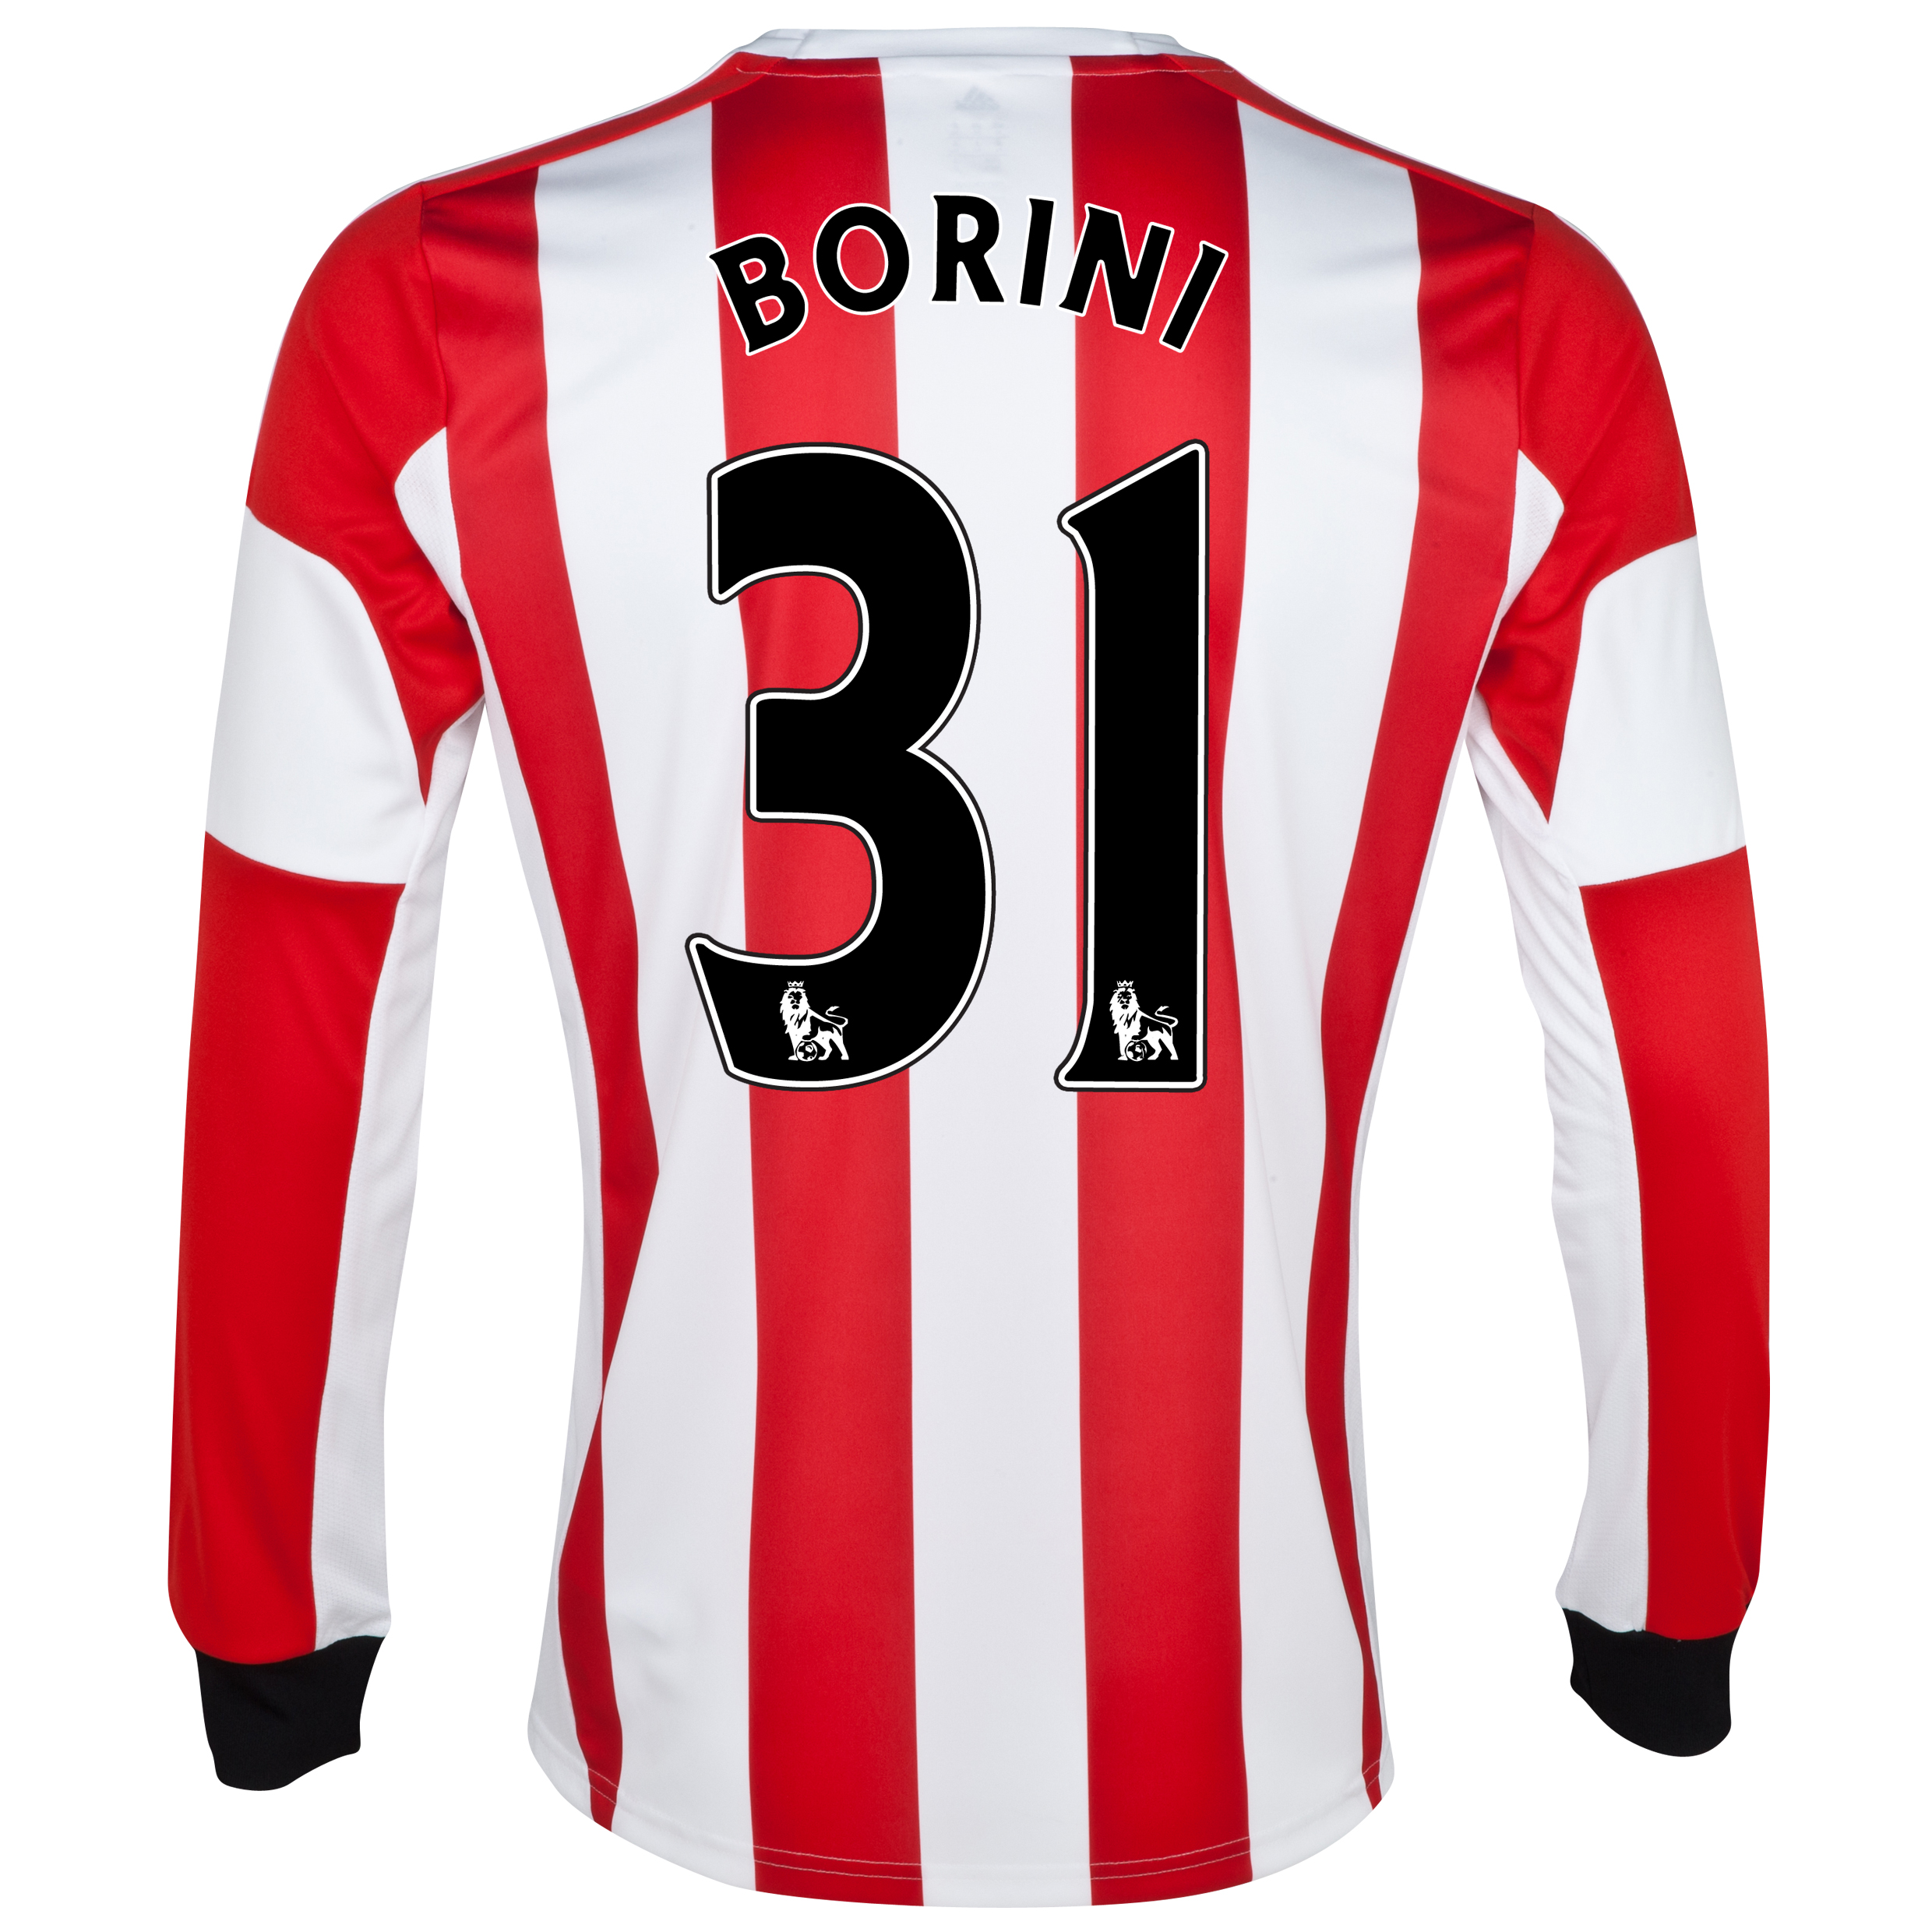 Sunderland Home Shirt 2013/14 - Long Sleeved with Borini 31 printing